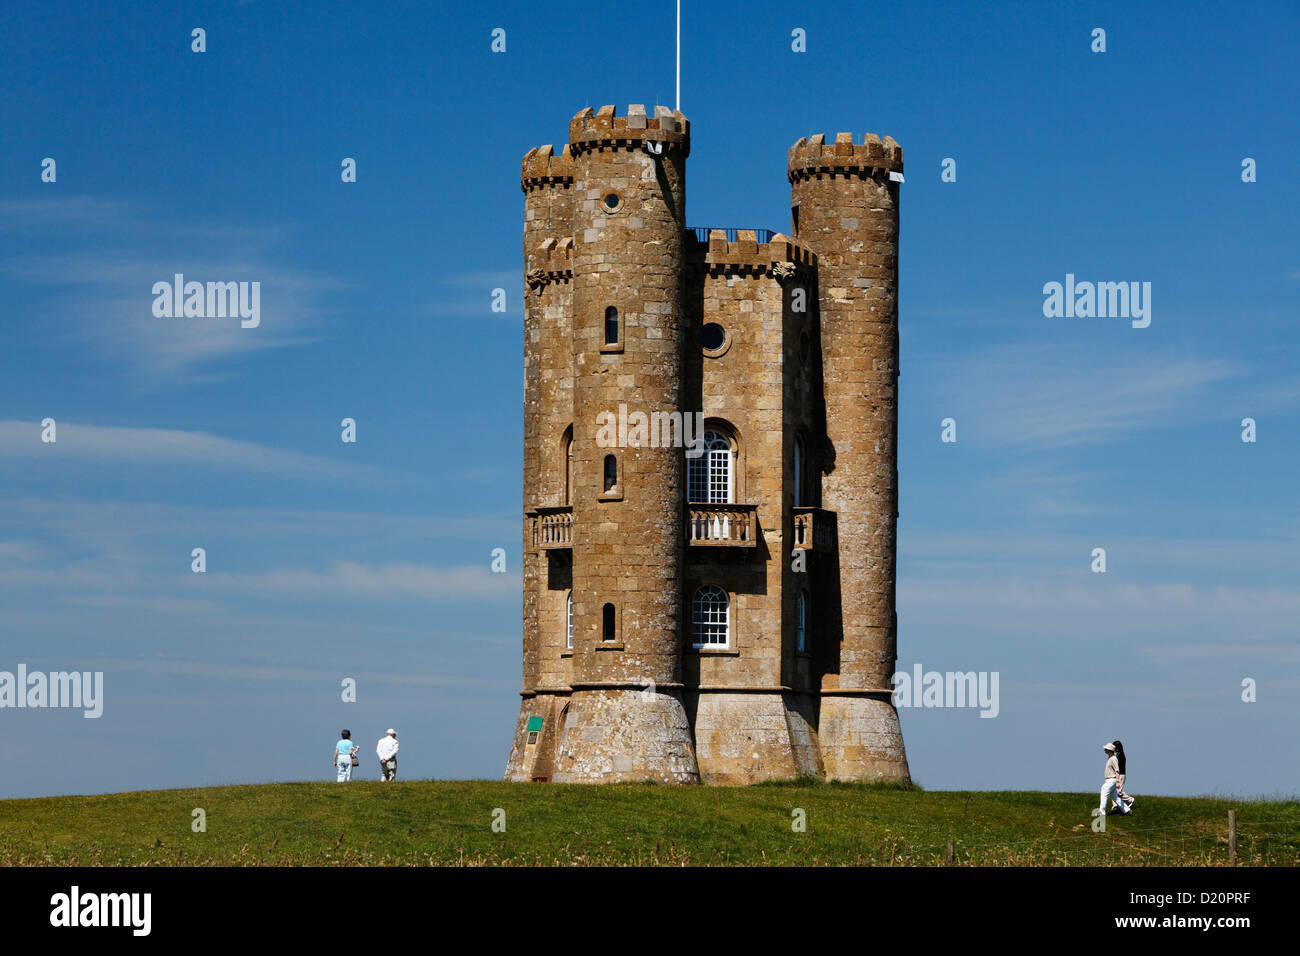 Broadway Tower in the sunlight, Gloucestershire, Cotswolds, England, Great Britain, Europe - Stock Image